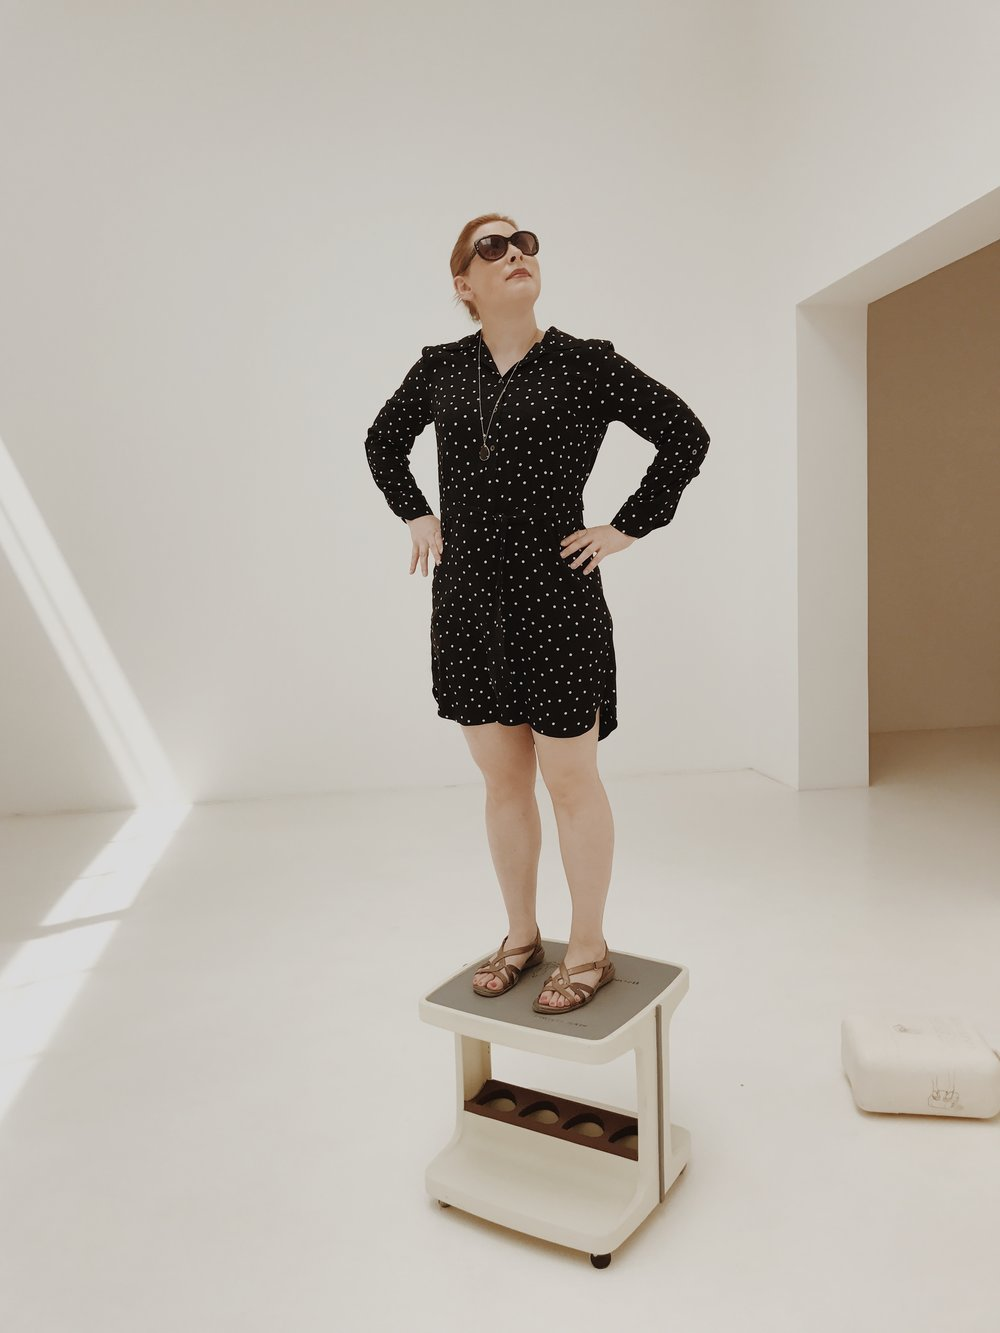 In case you're wondering what the hell is going on here, the Austria pavilion at the 2017 Venice Biennale had an interactive exhibit. This is by far the least ridiculous photo of me taken here.